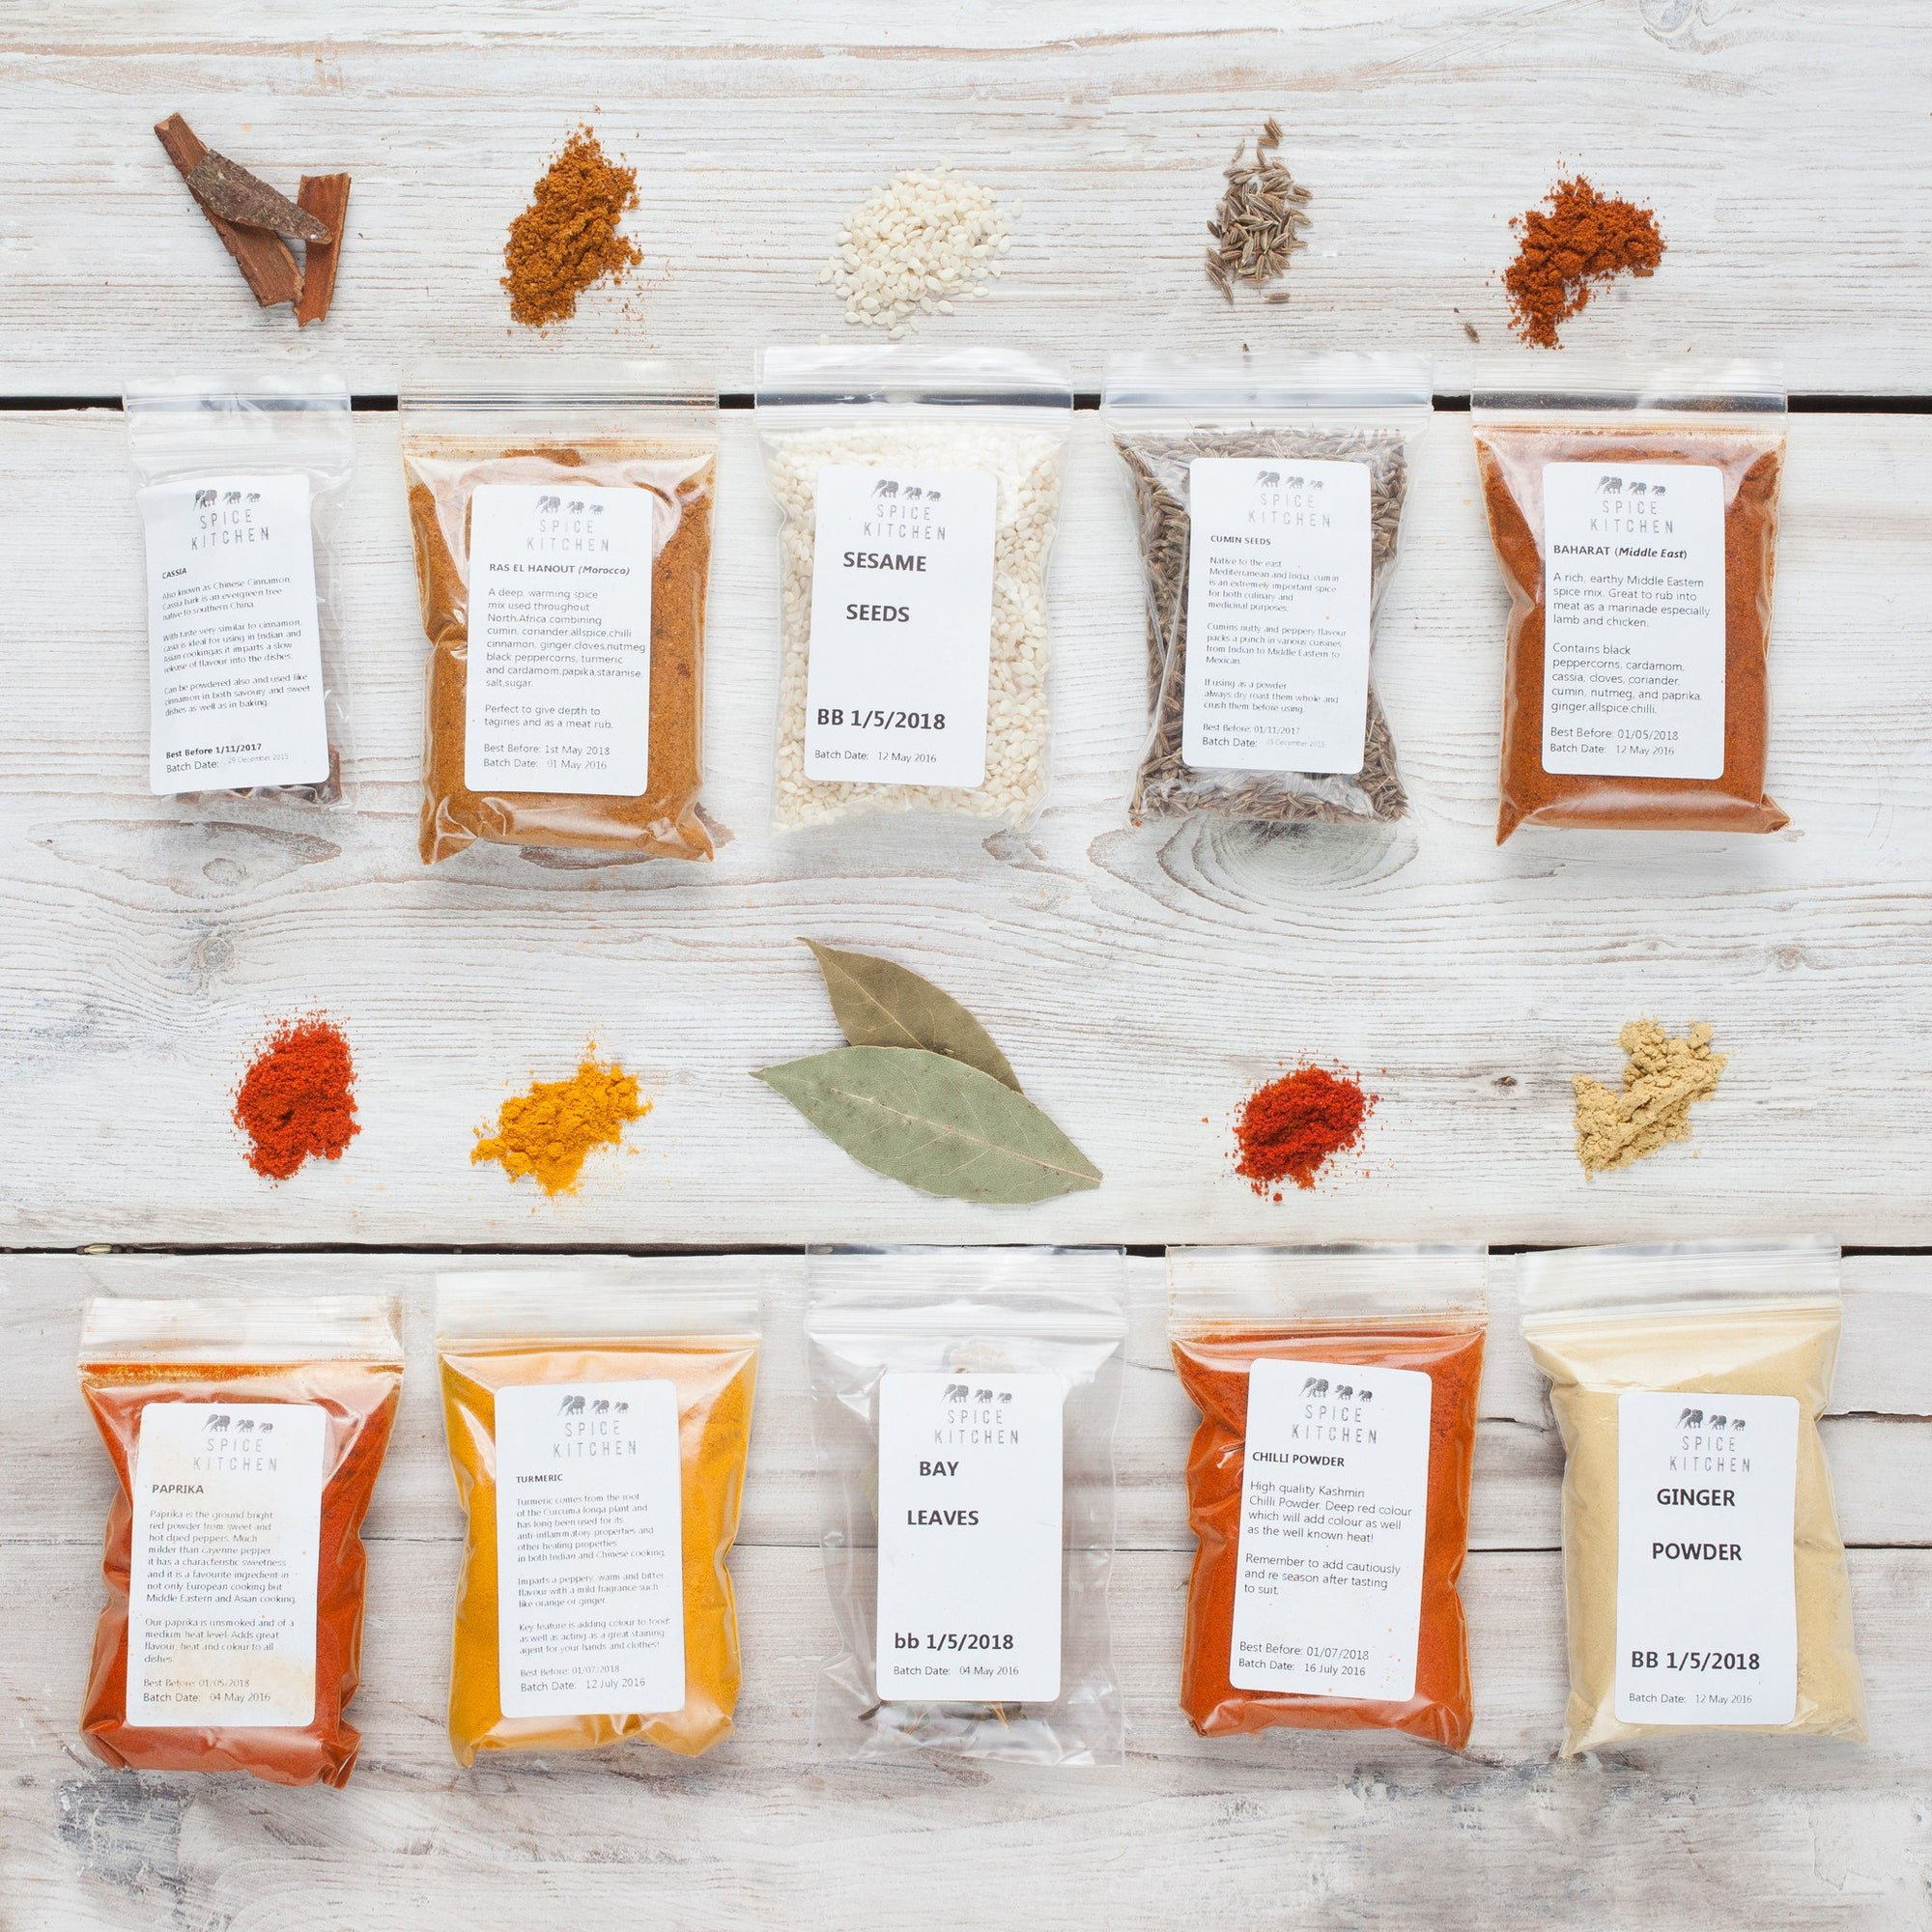 Pic 'n' Mix Small 20g - Spice Kitchen™ - Spices, Spice Blends, Gifts & Cookware